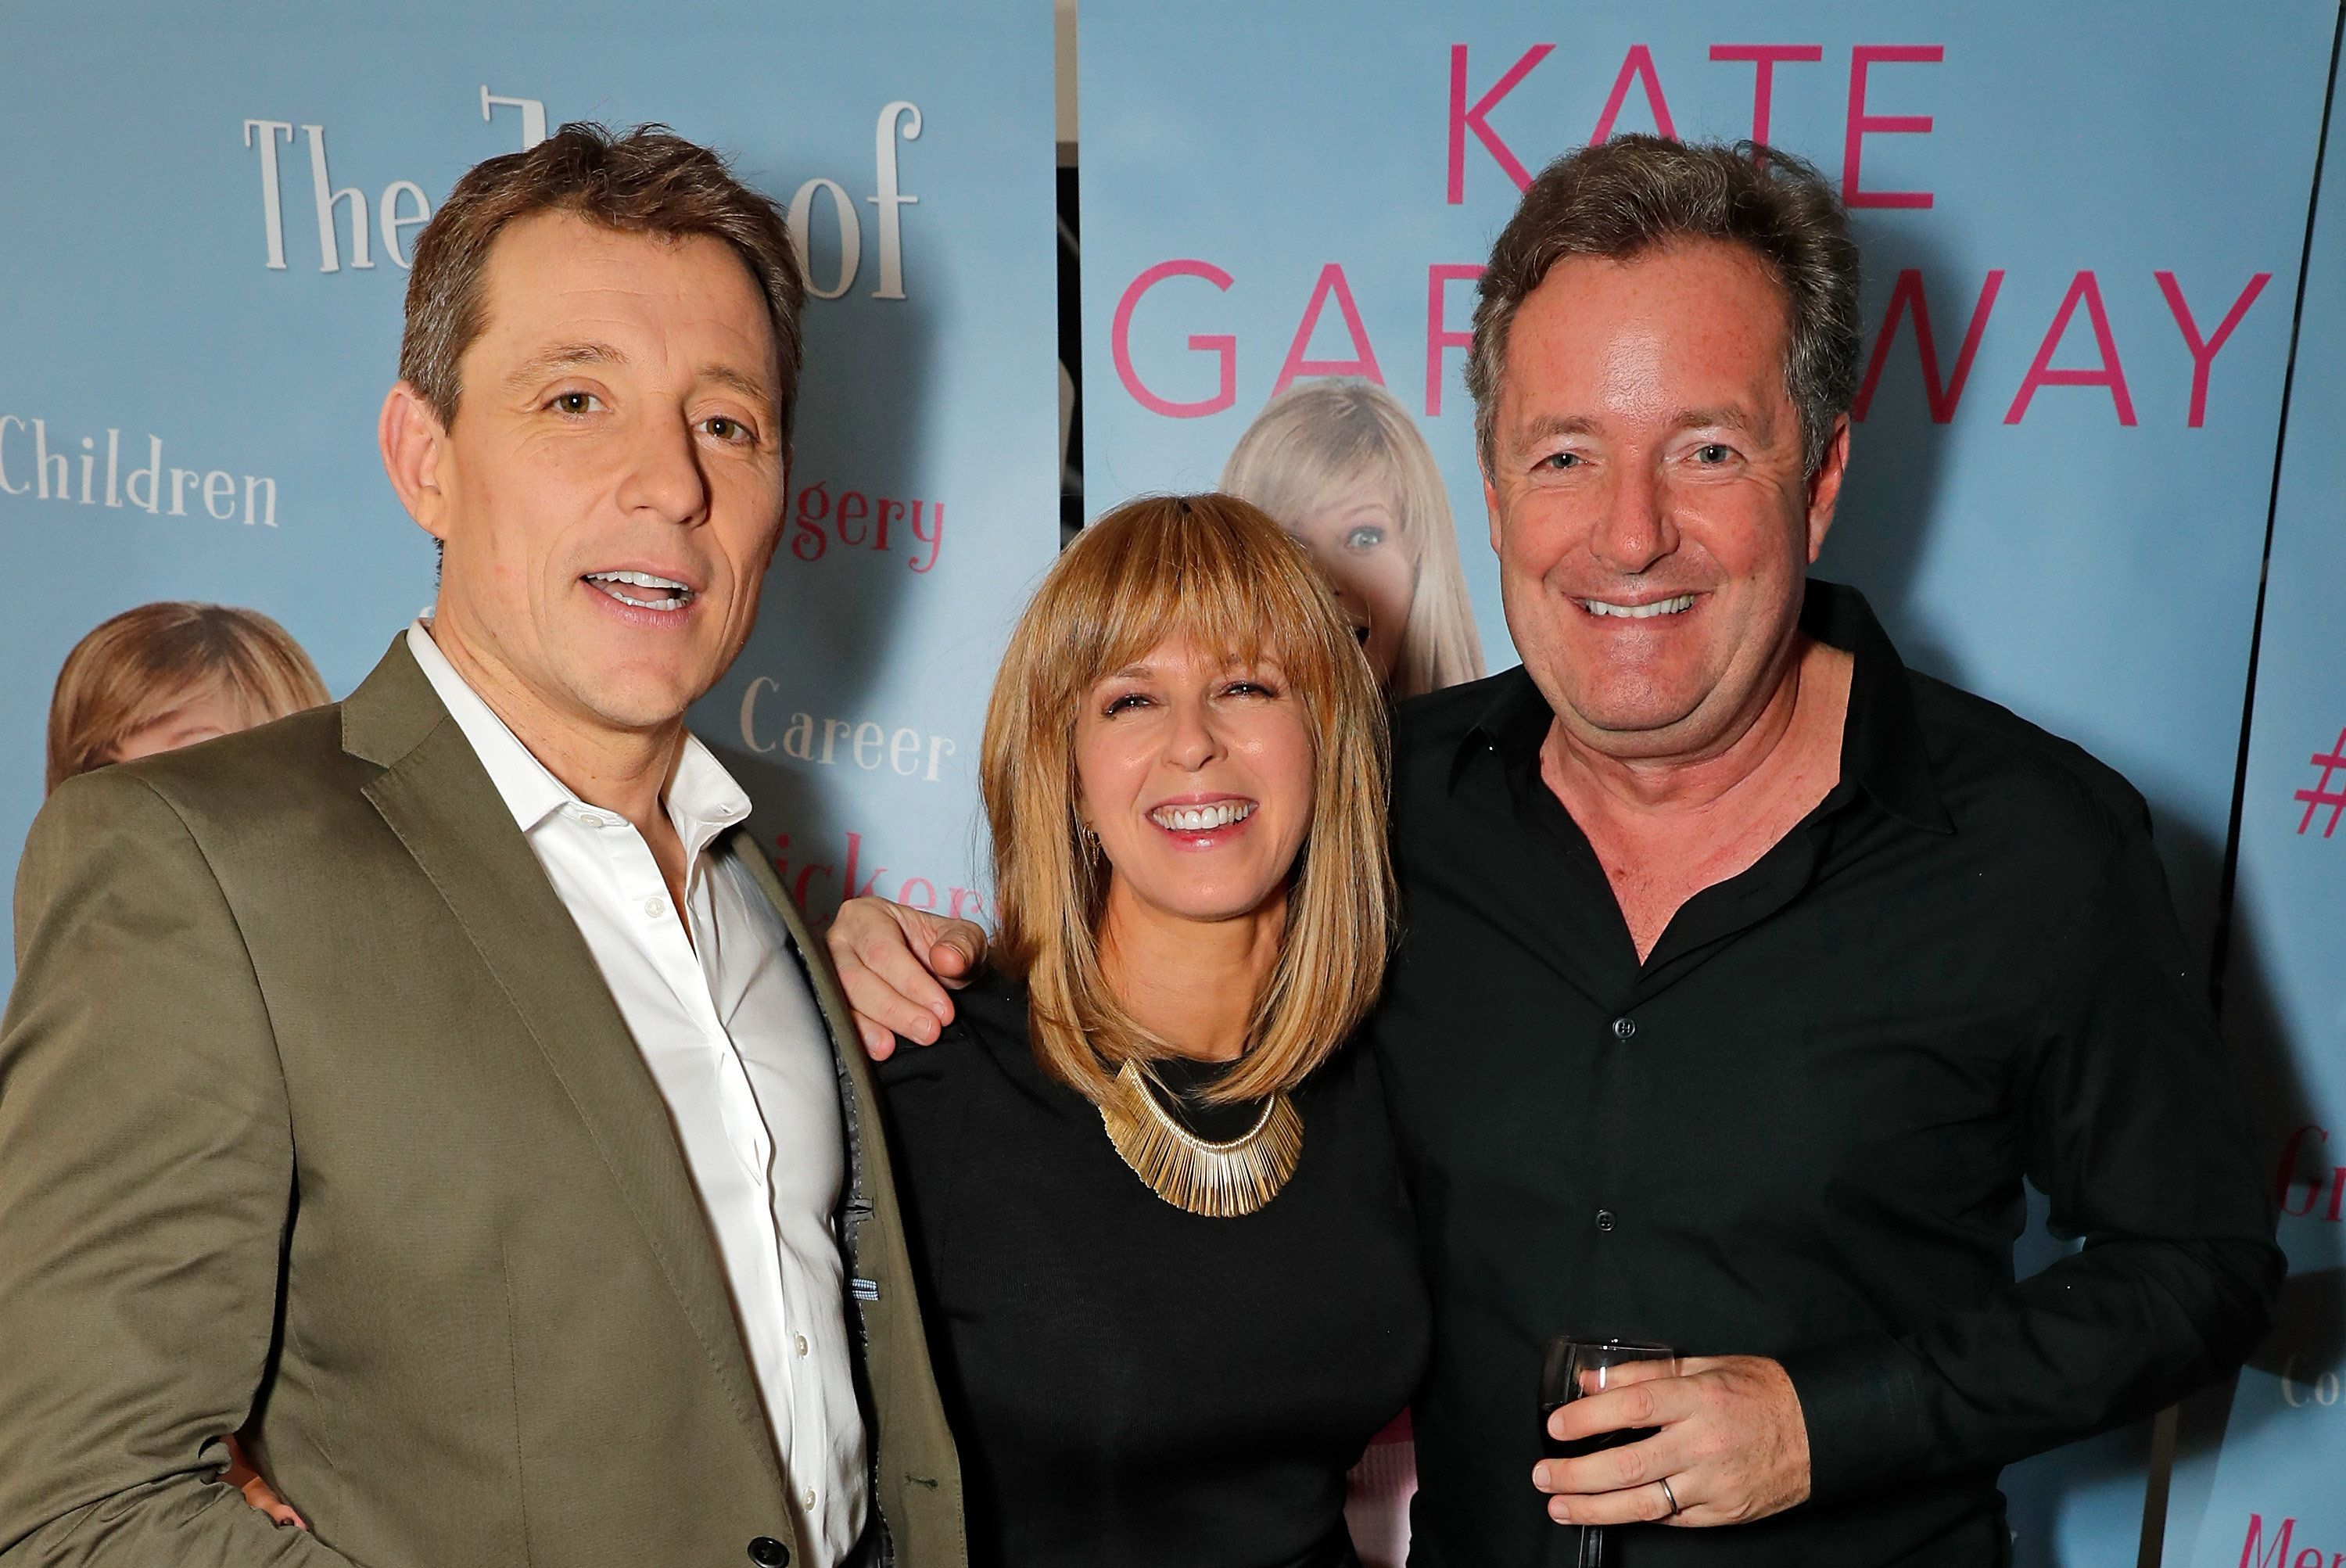 Kate Garraway Defends 'Lovely And Supportive' Piers